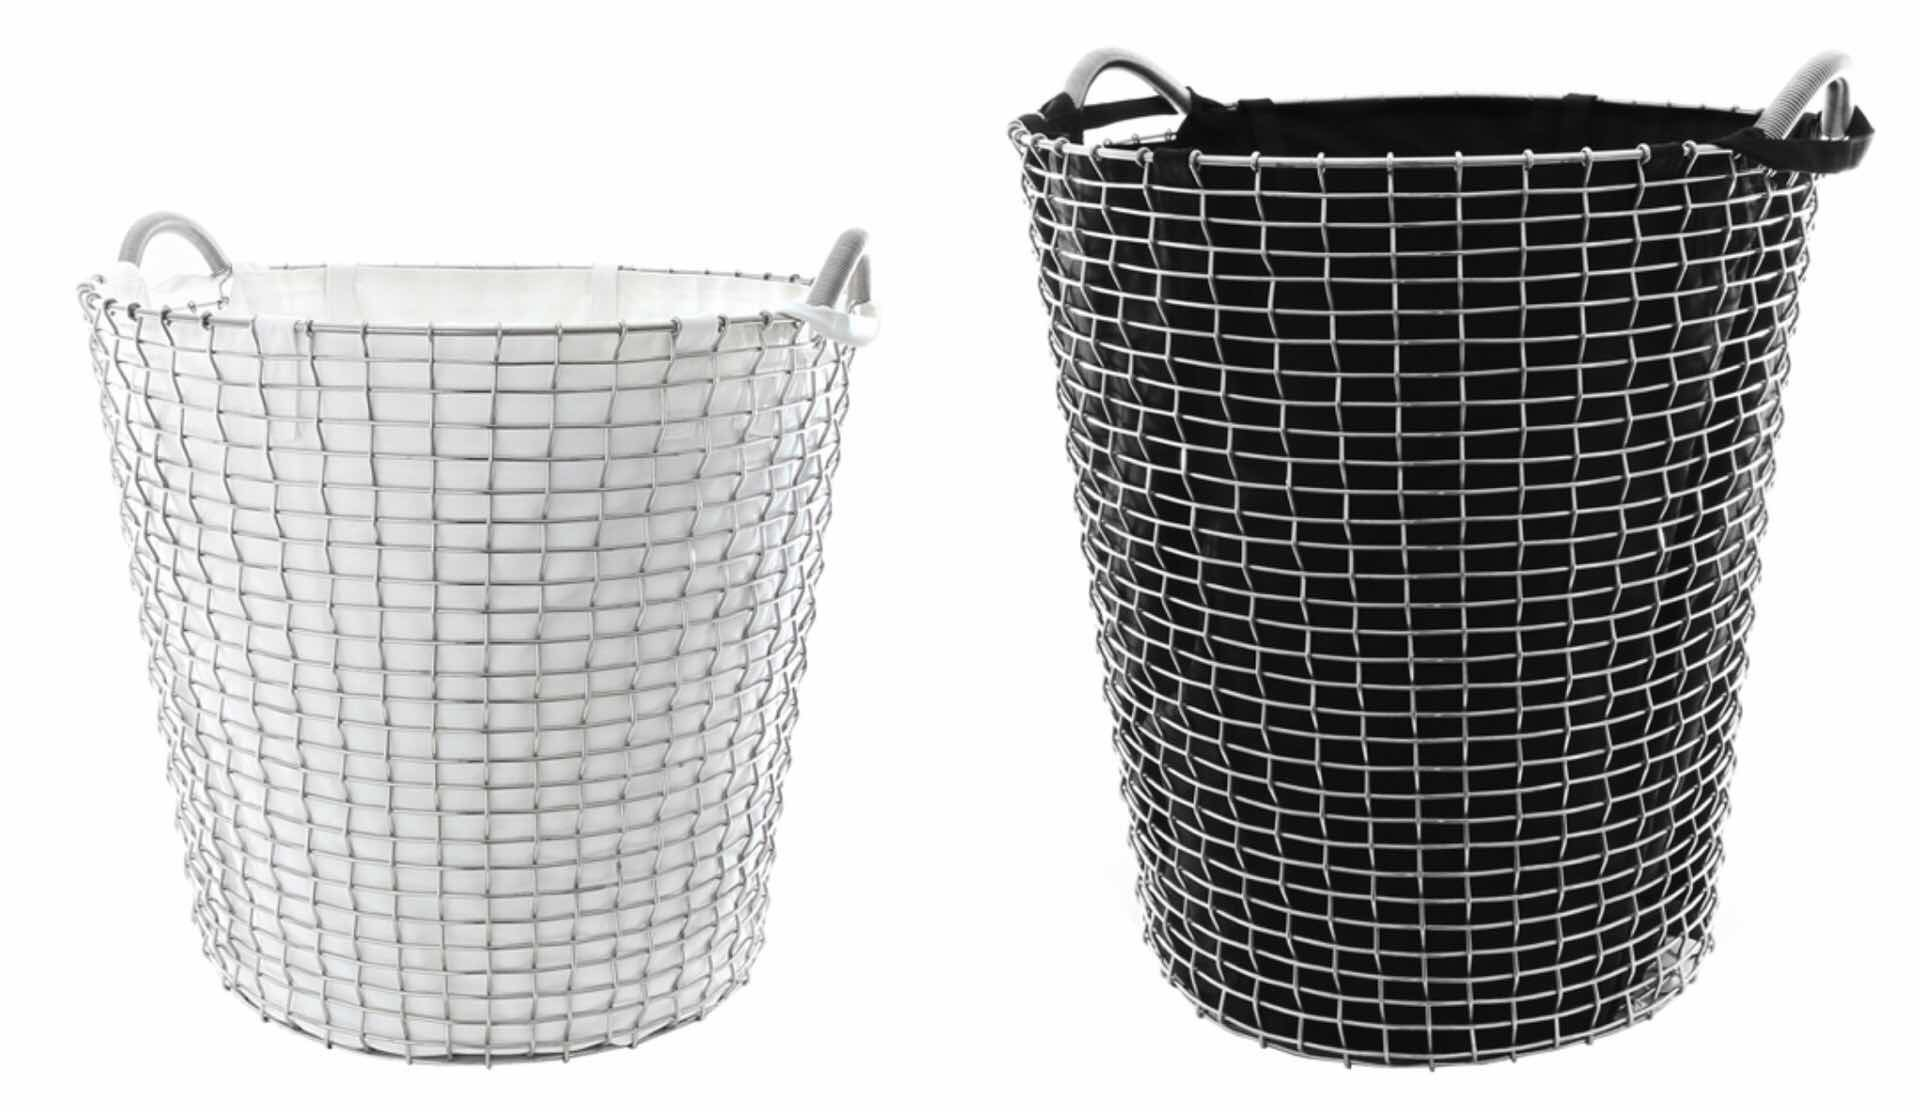 korbo-classic-series-laundry-baskets-3